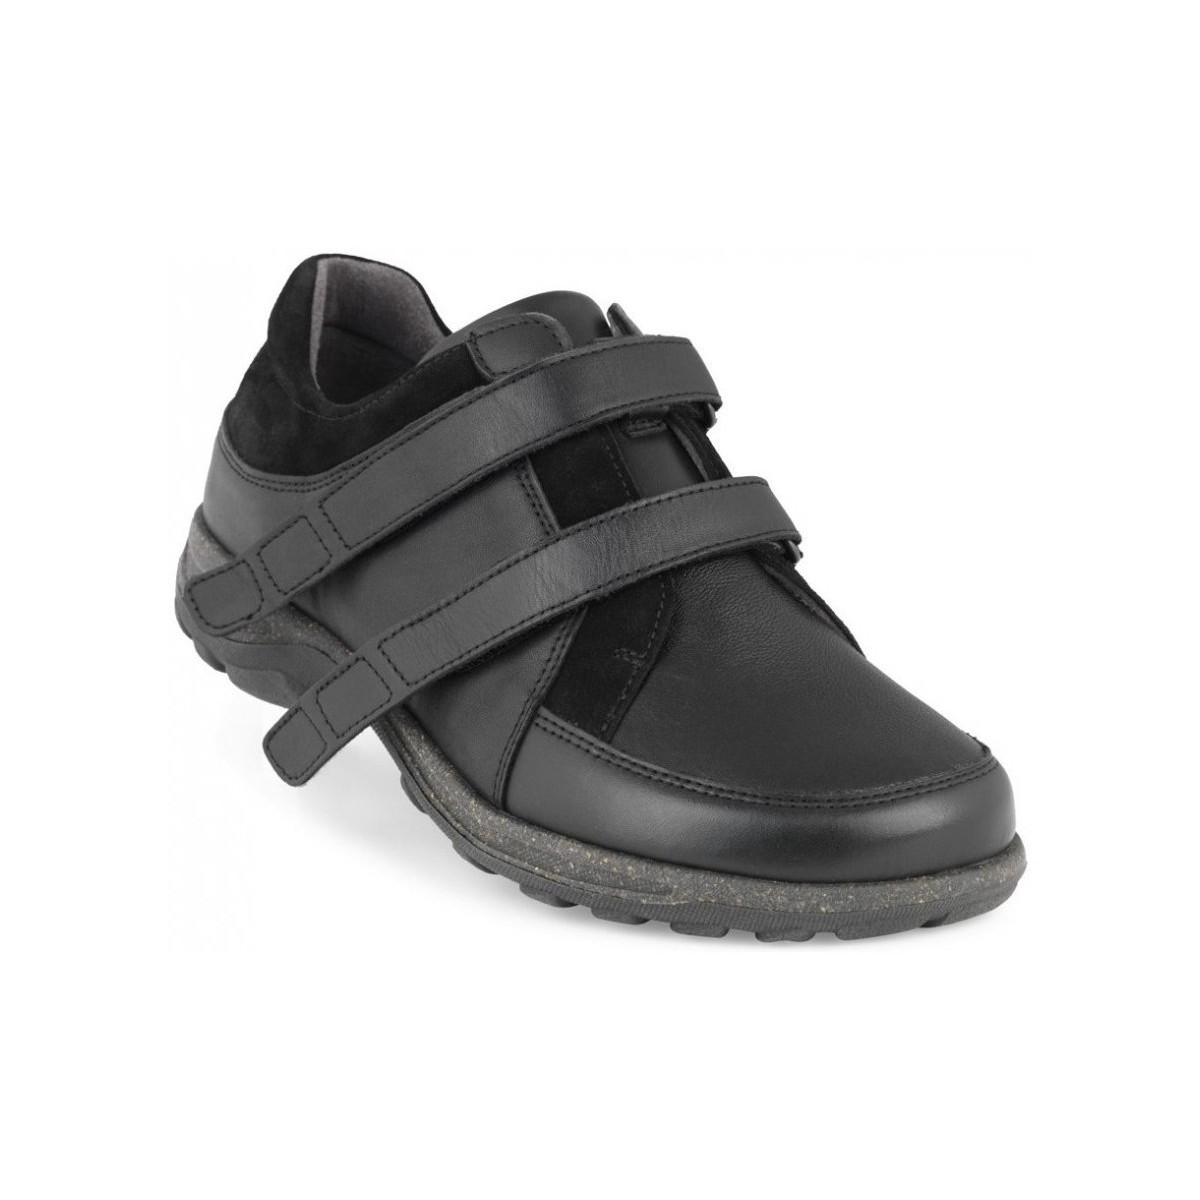 Loafers New Feet  172 19 210  03-0066